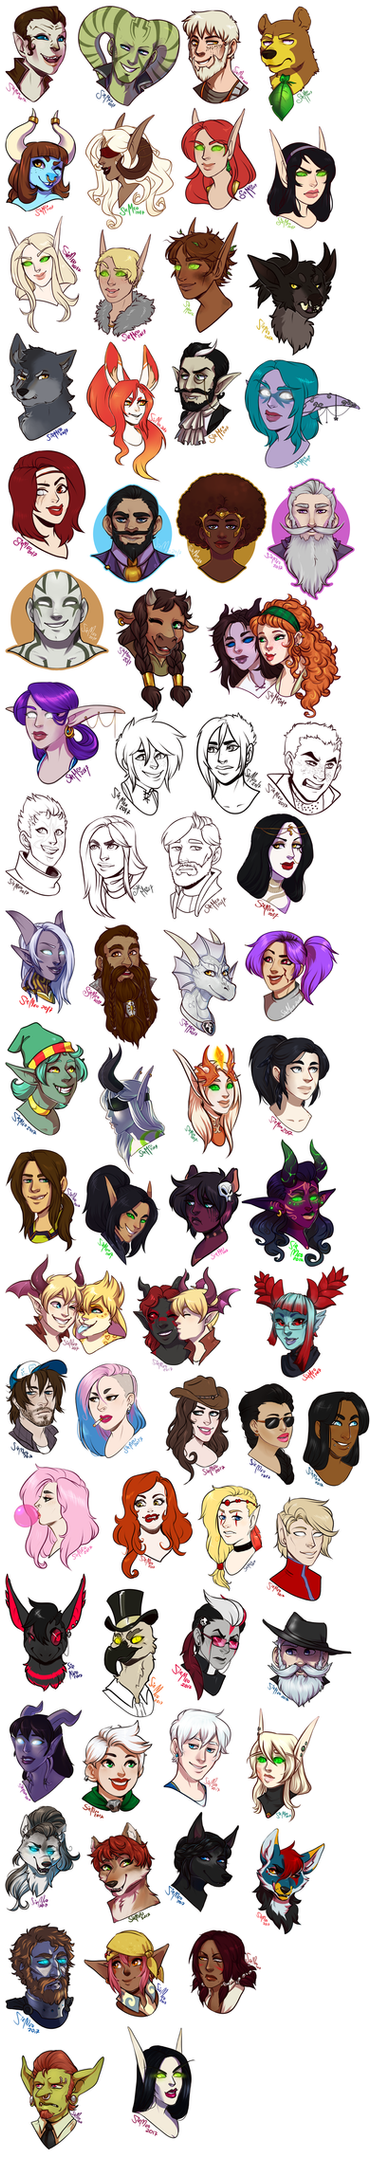 [commission] GIANT file -- headshot commissions by SirMeo